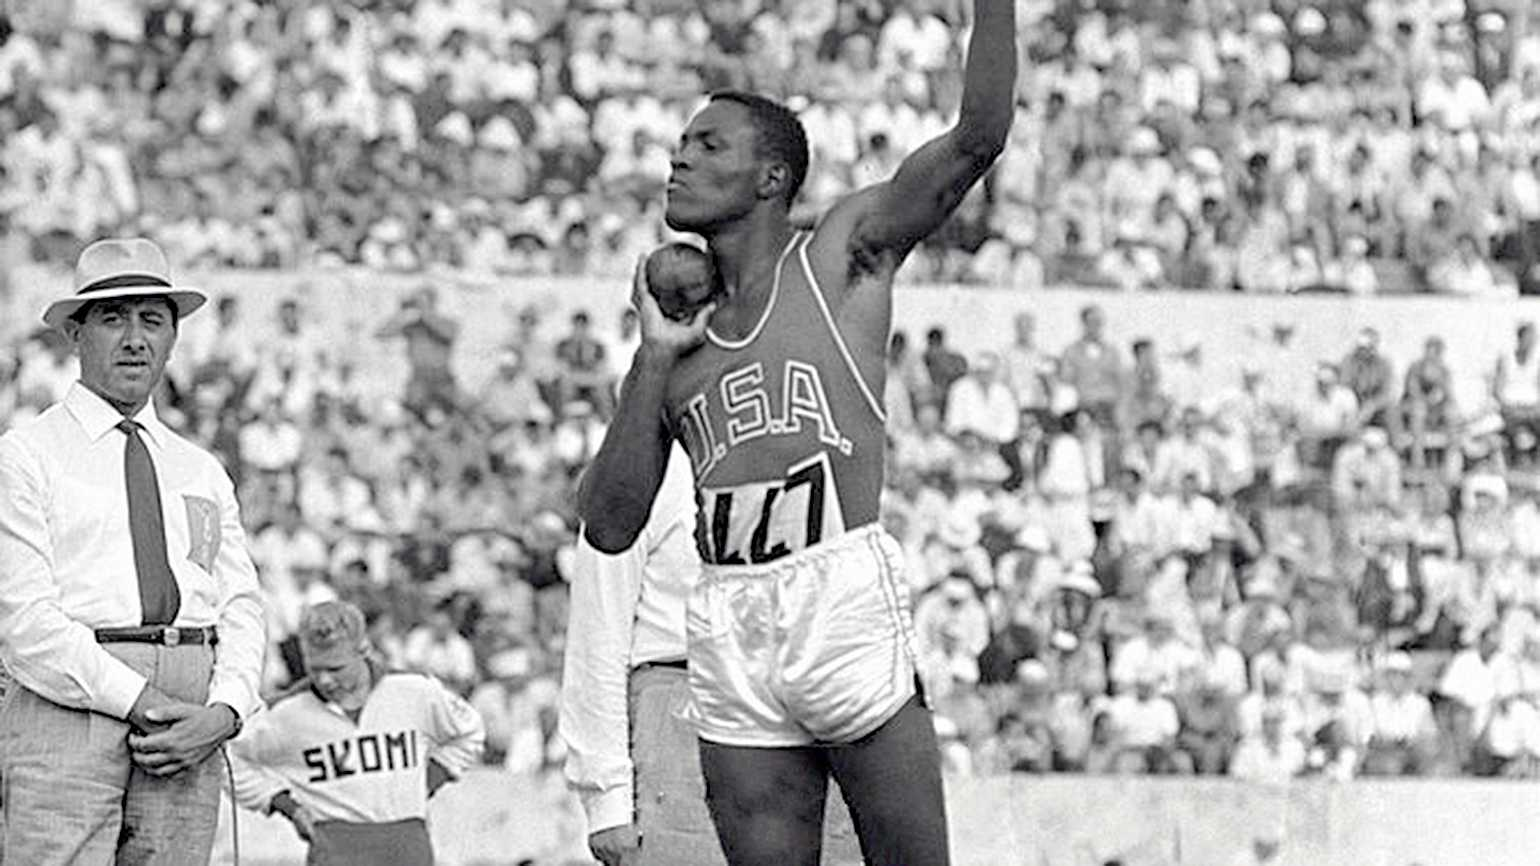 Rafter Johnson competing at that 1950 Olumpics; Public domain, via Wikimedia Commons